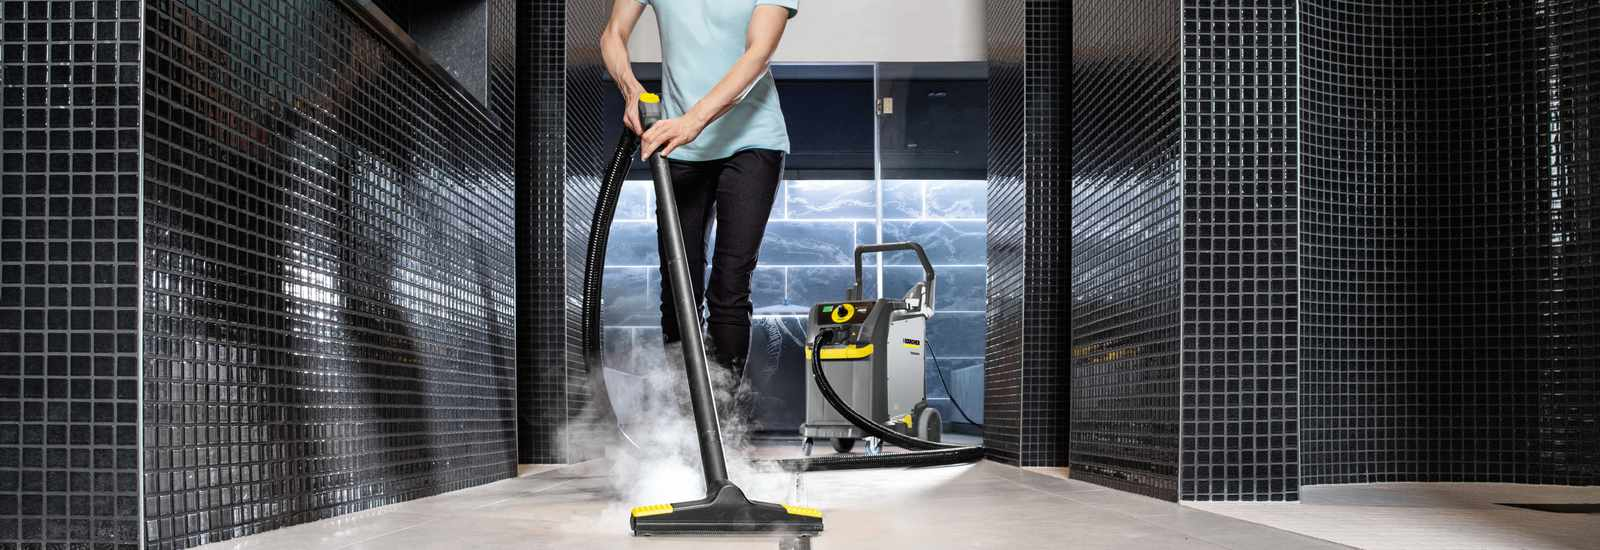 Steam cleaning a gym or pool tiled floor